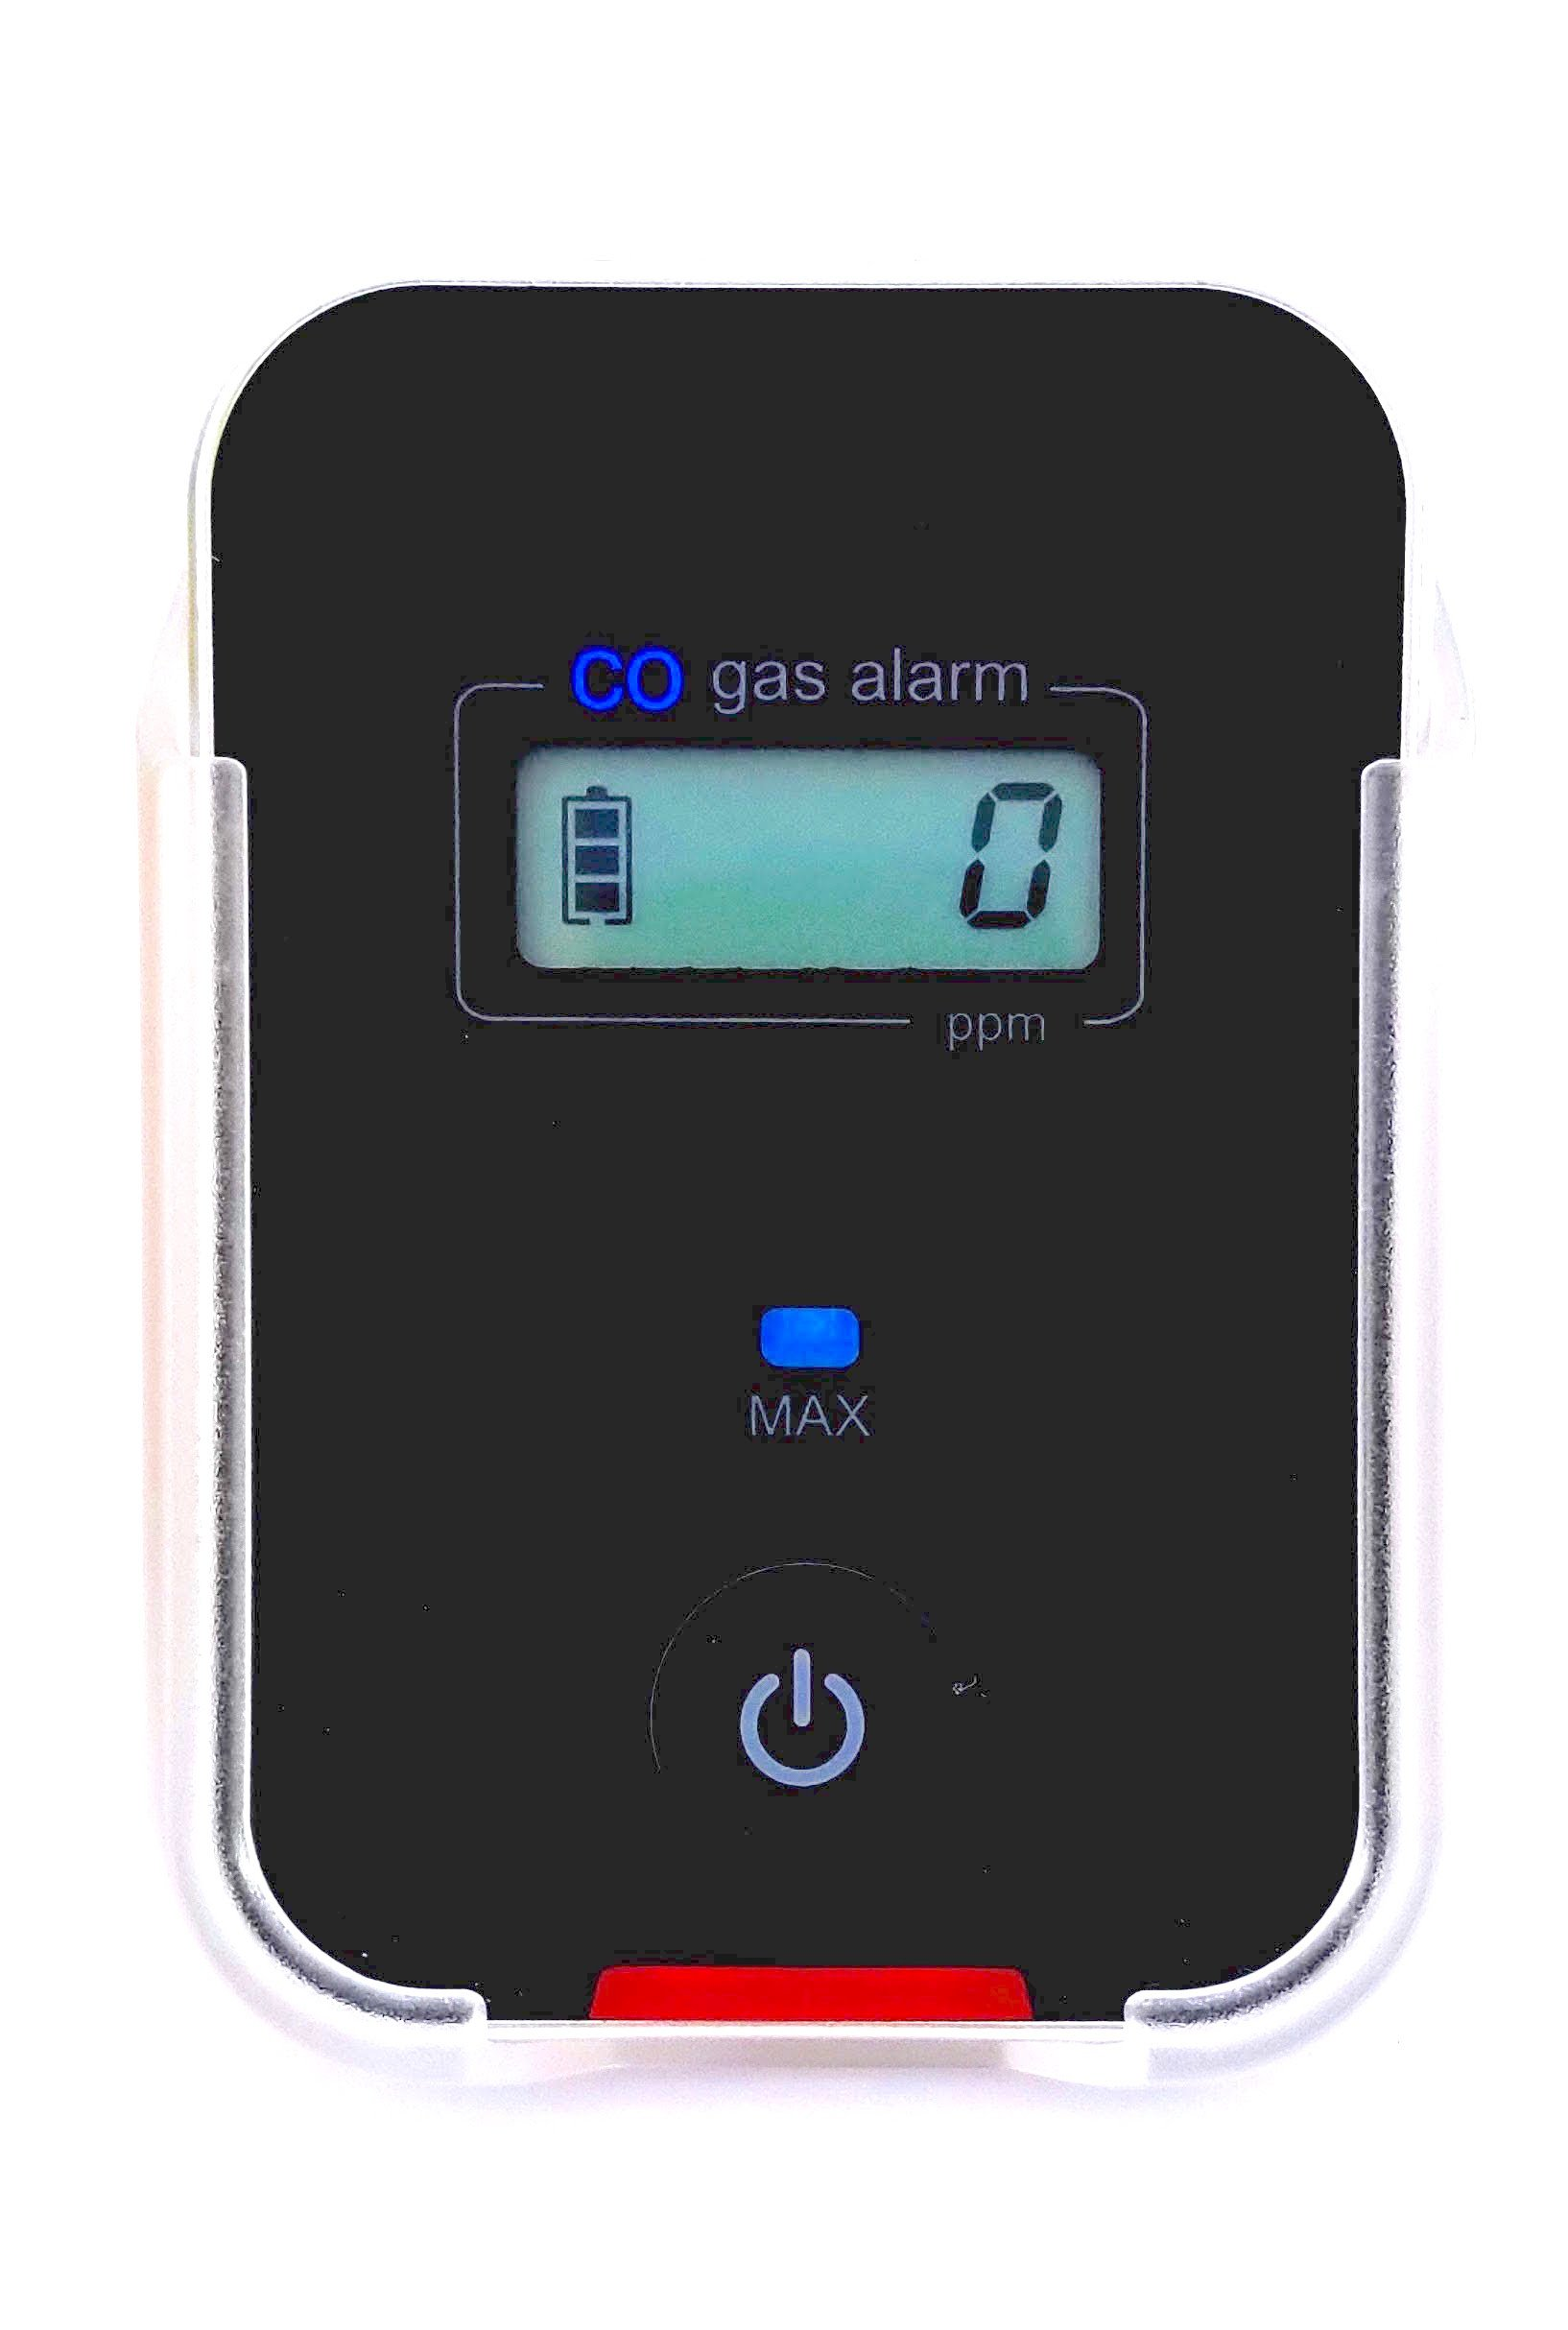 Car, Vehicle, Aircraft Carbon Monoxide CO Detector by Forensics | Fast Low-Level 9ppm Alarm | Vehicles, Police, Pilots, Travel, Bus, Trucks | Metal Body, Small 2oz | by FORENSICS DETECTORS